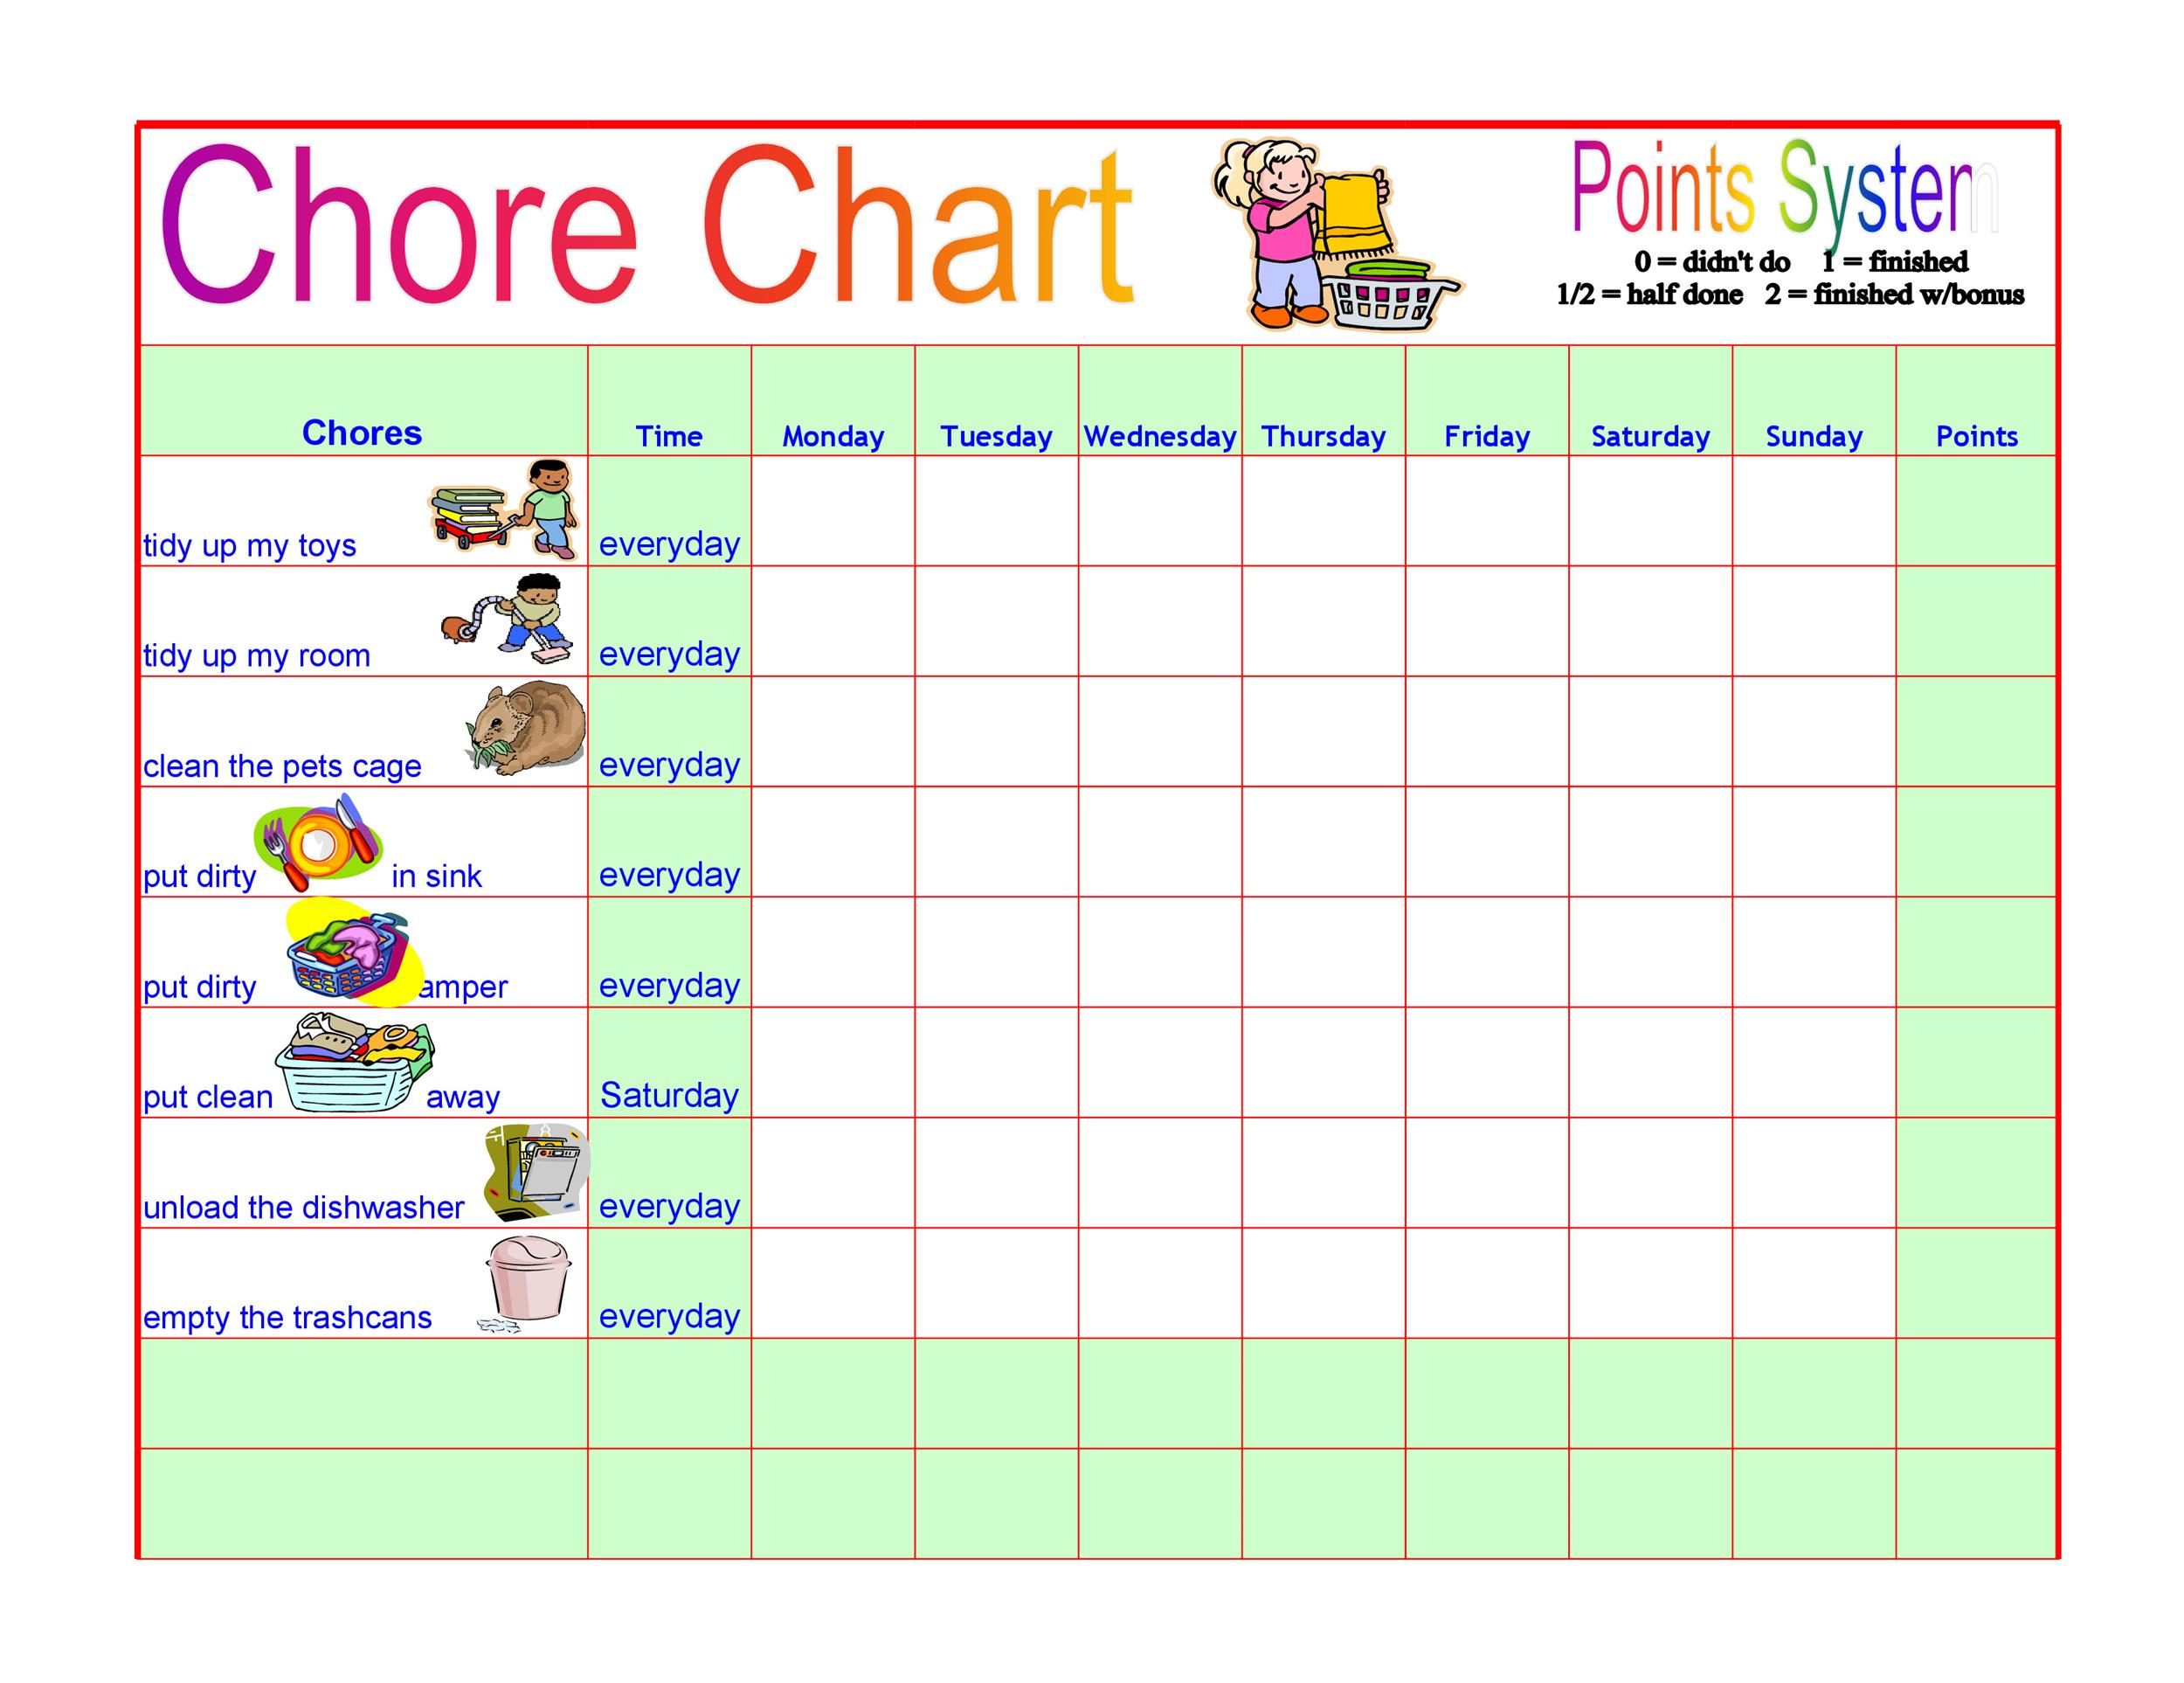 Free Printable Chore Chart Template from templatelab.com